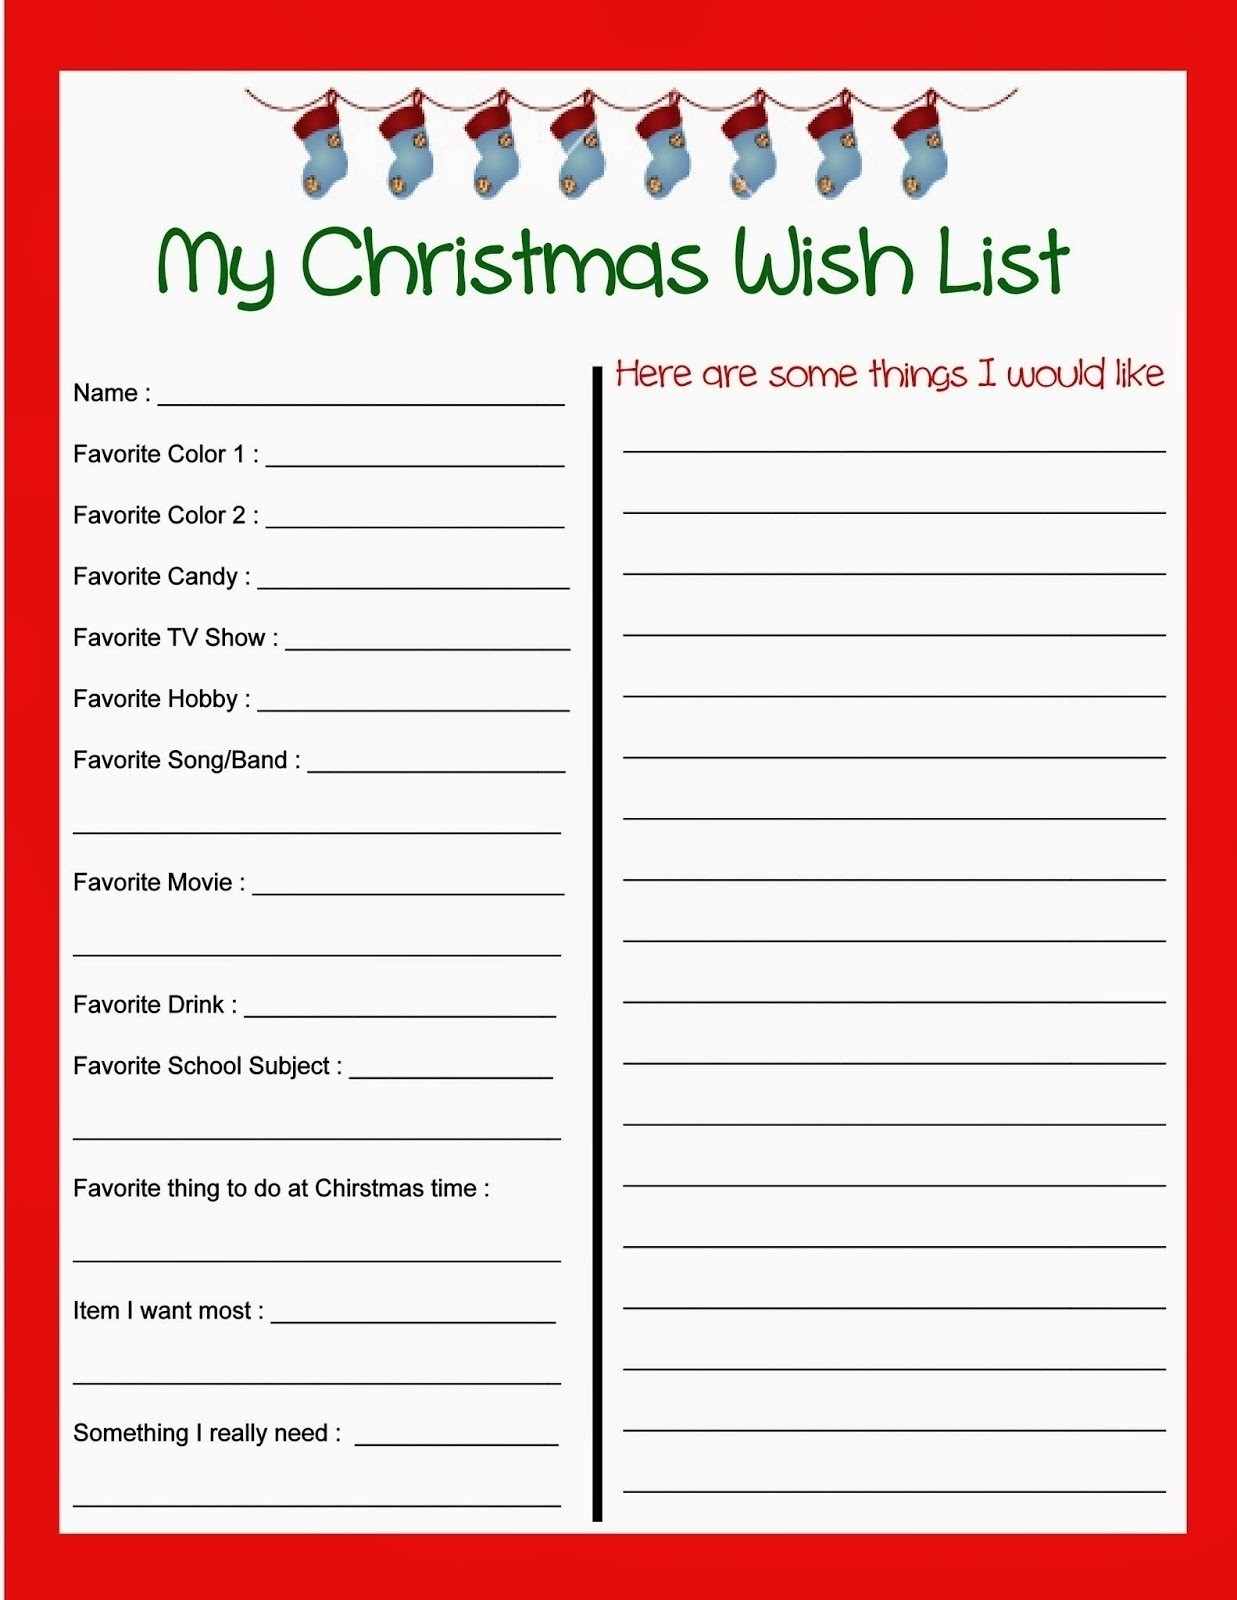 Printable Christmas Wish List Template | World Of Example pertaining to Blank Christmas List Printable 19131